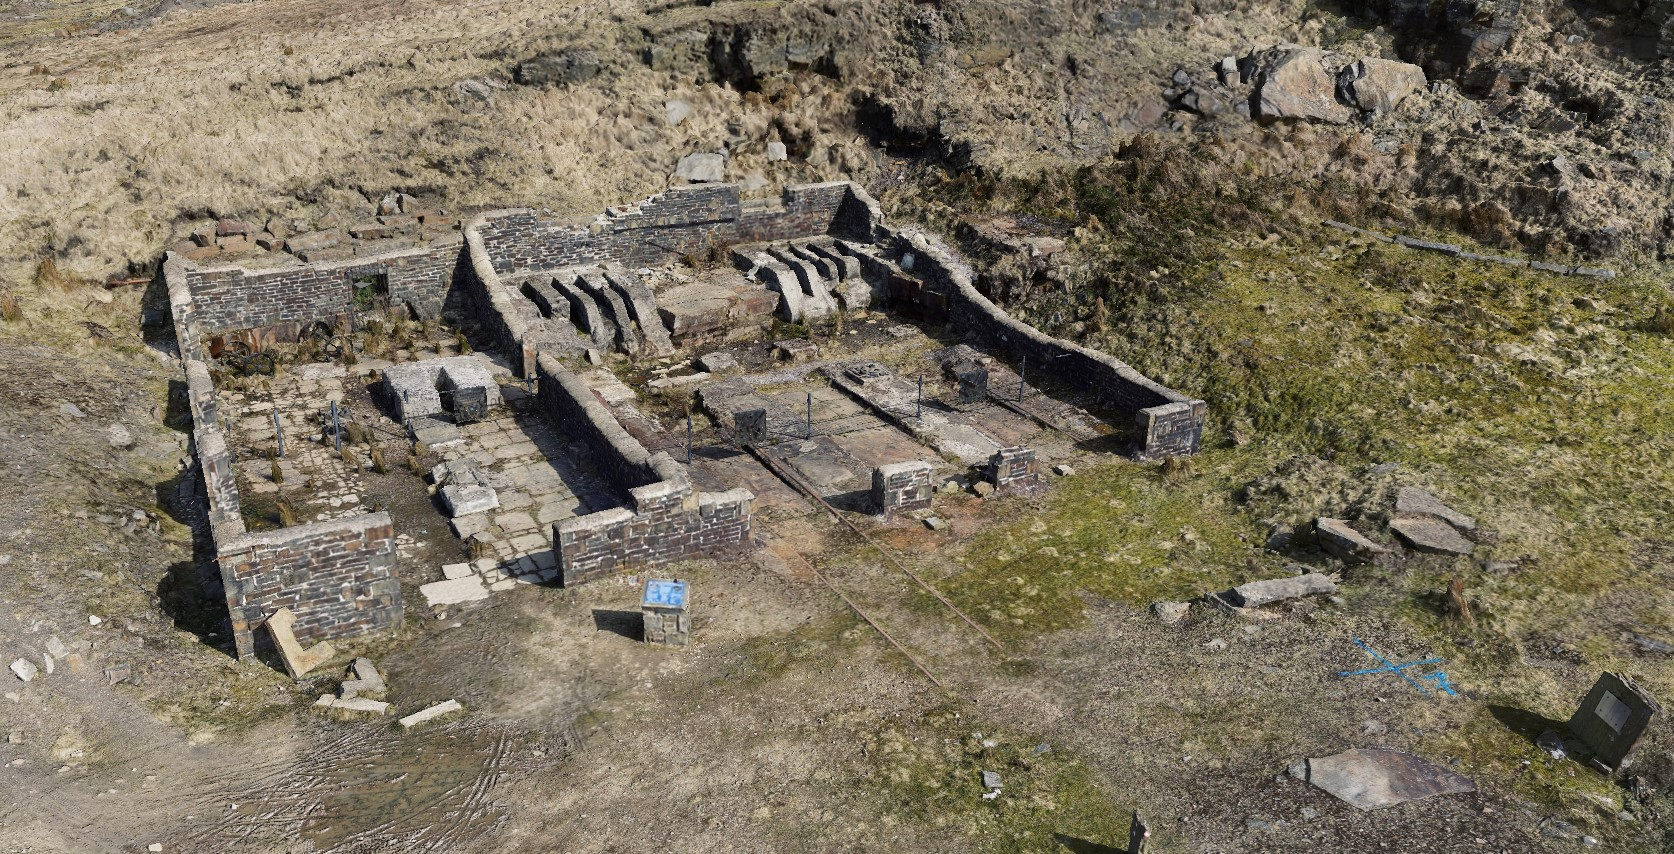 lee quarry rossendale quarry saw sheds heritage valley of stone